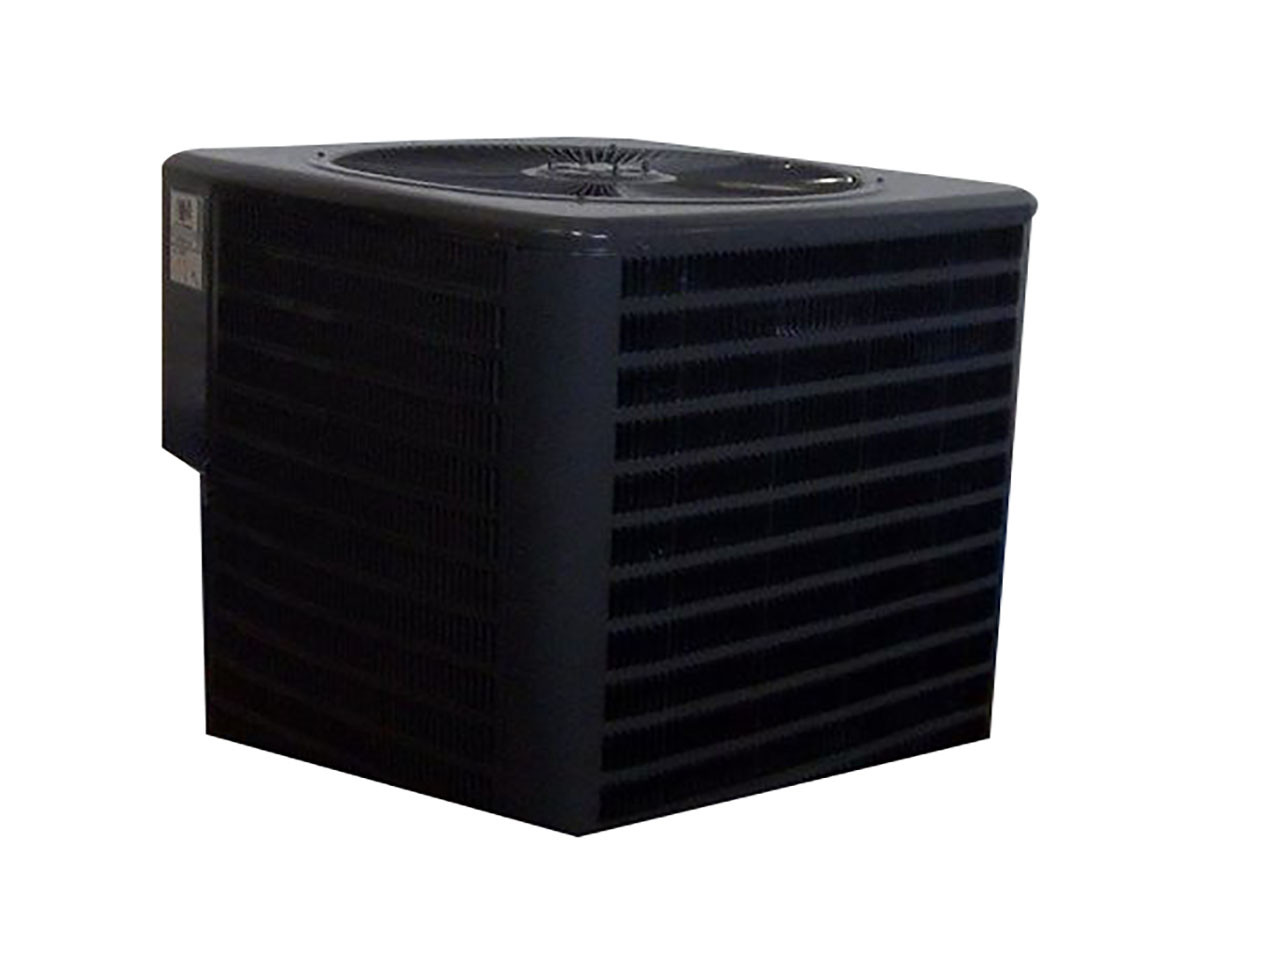 #111116 Used AC Depot Refurbished Certified Condenser GOODMAN  Brand New 5221 Mini Split Ac Home Depot images with 1280x960 px on helpvideos.info - Air Conditioners, Air Coolers and more